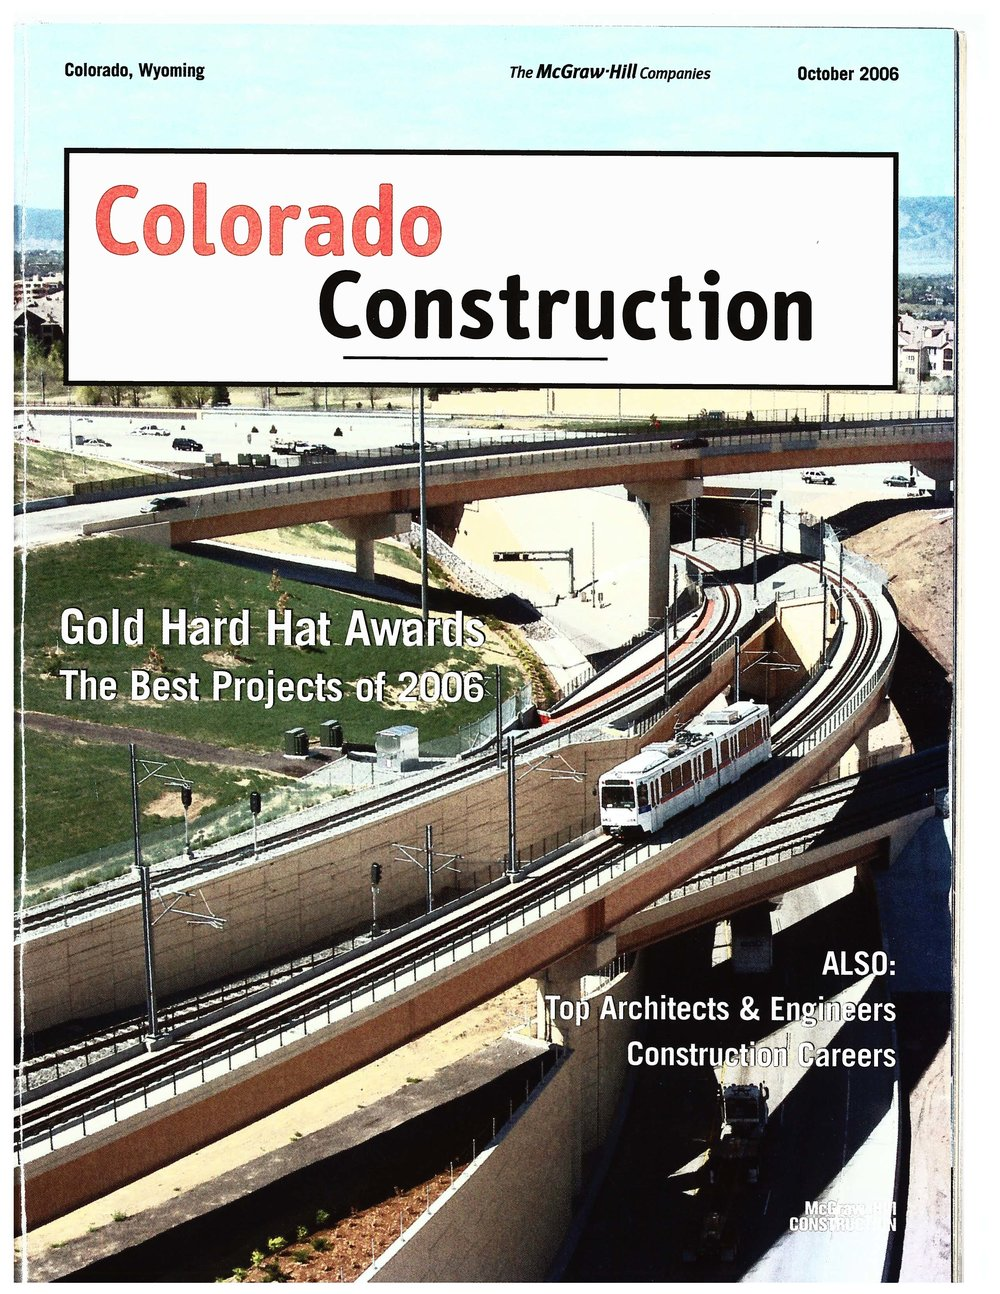 TCP_Awards_Colorado Construction 2006 Gold Hard Hat Award_Page_1.jpg